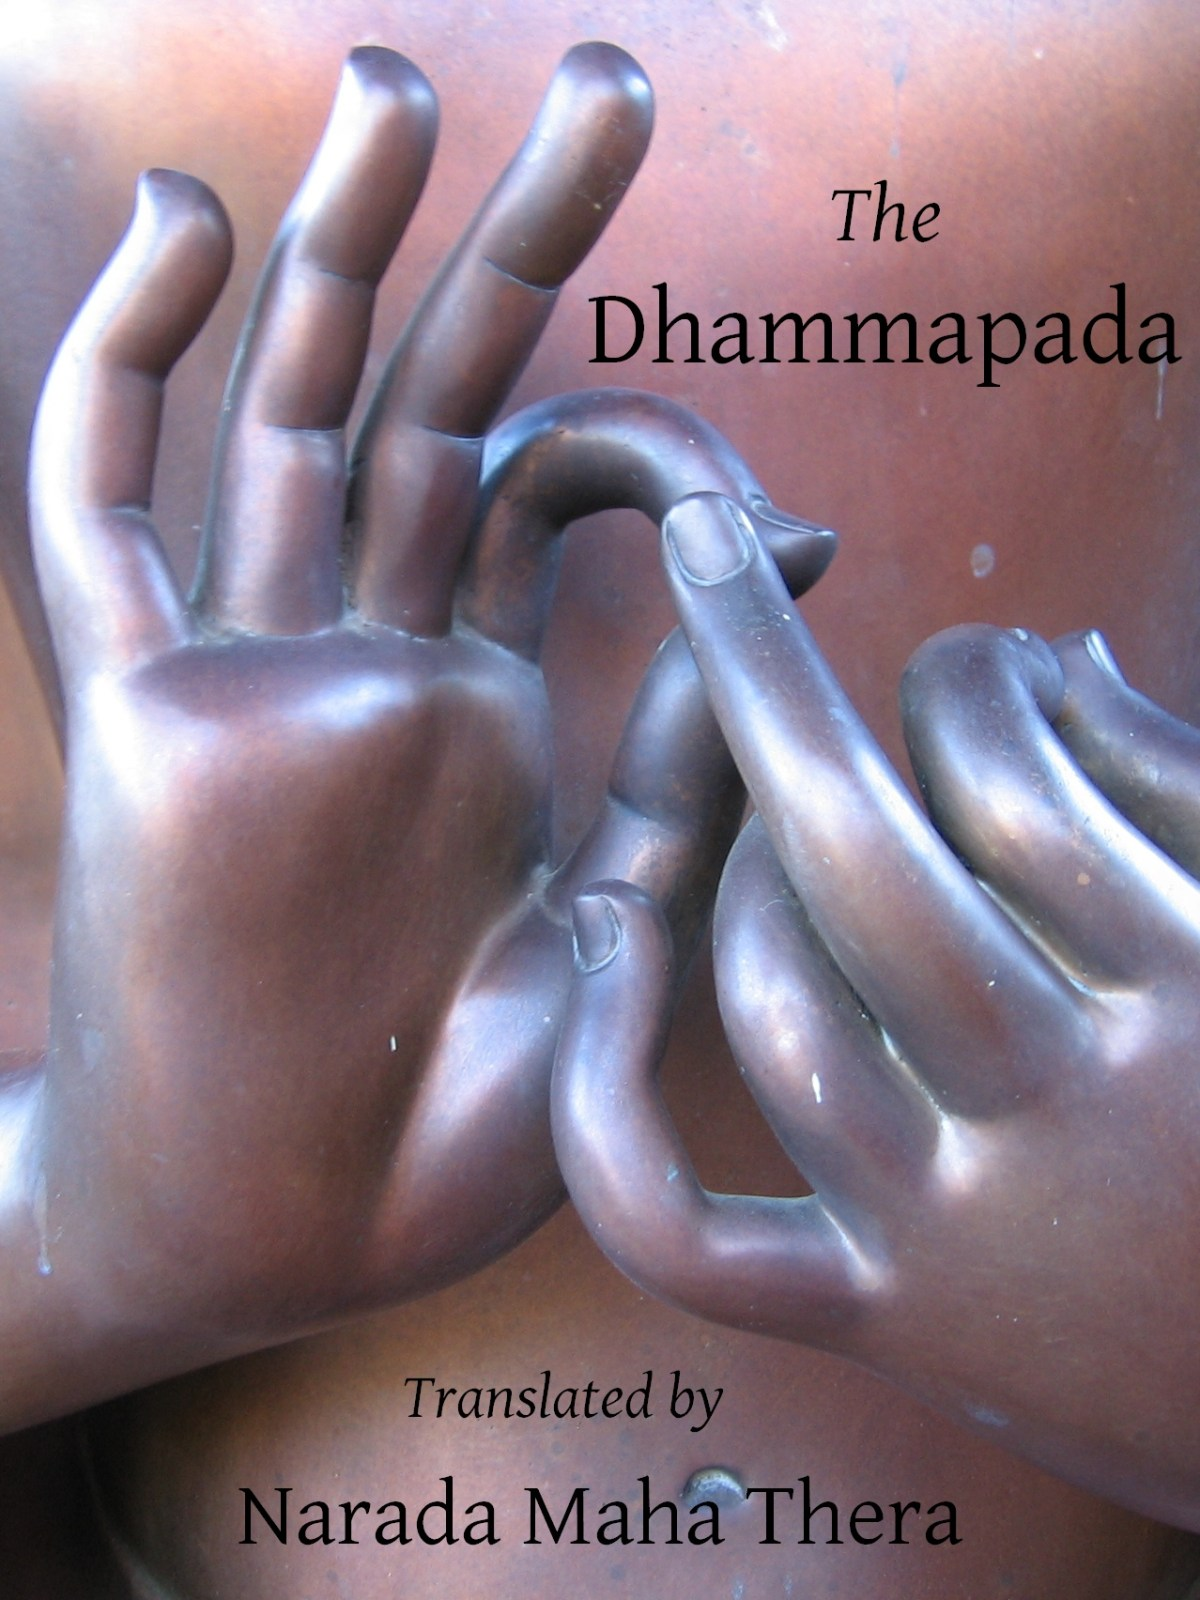 Cover of the Dhammapada translated by Narada Maha Thera